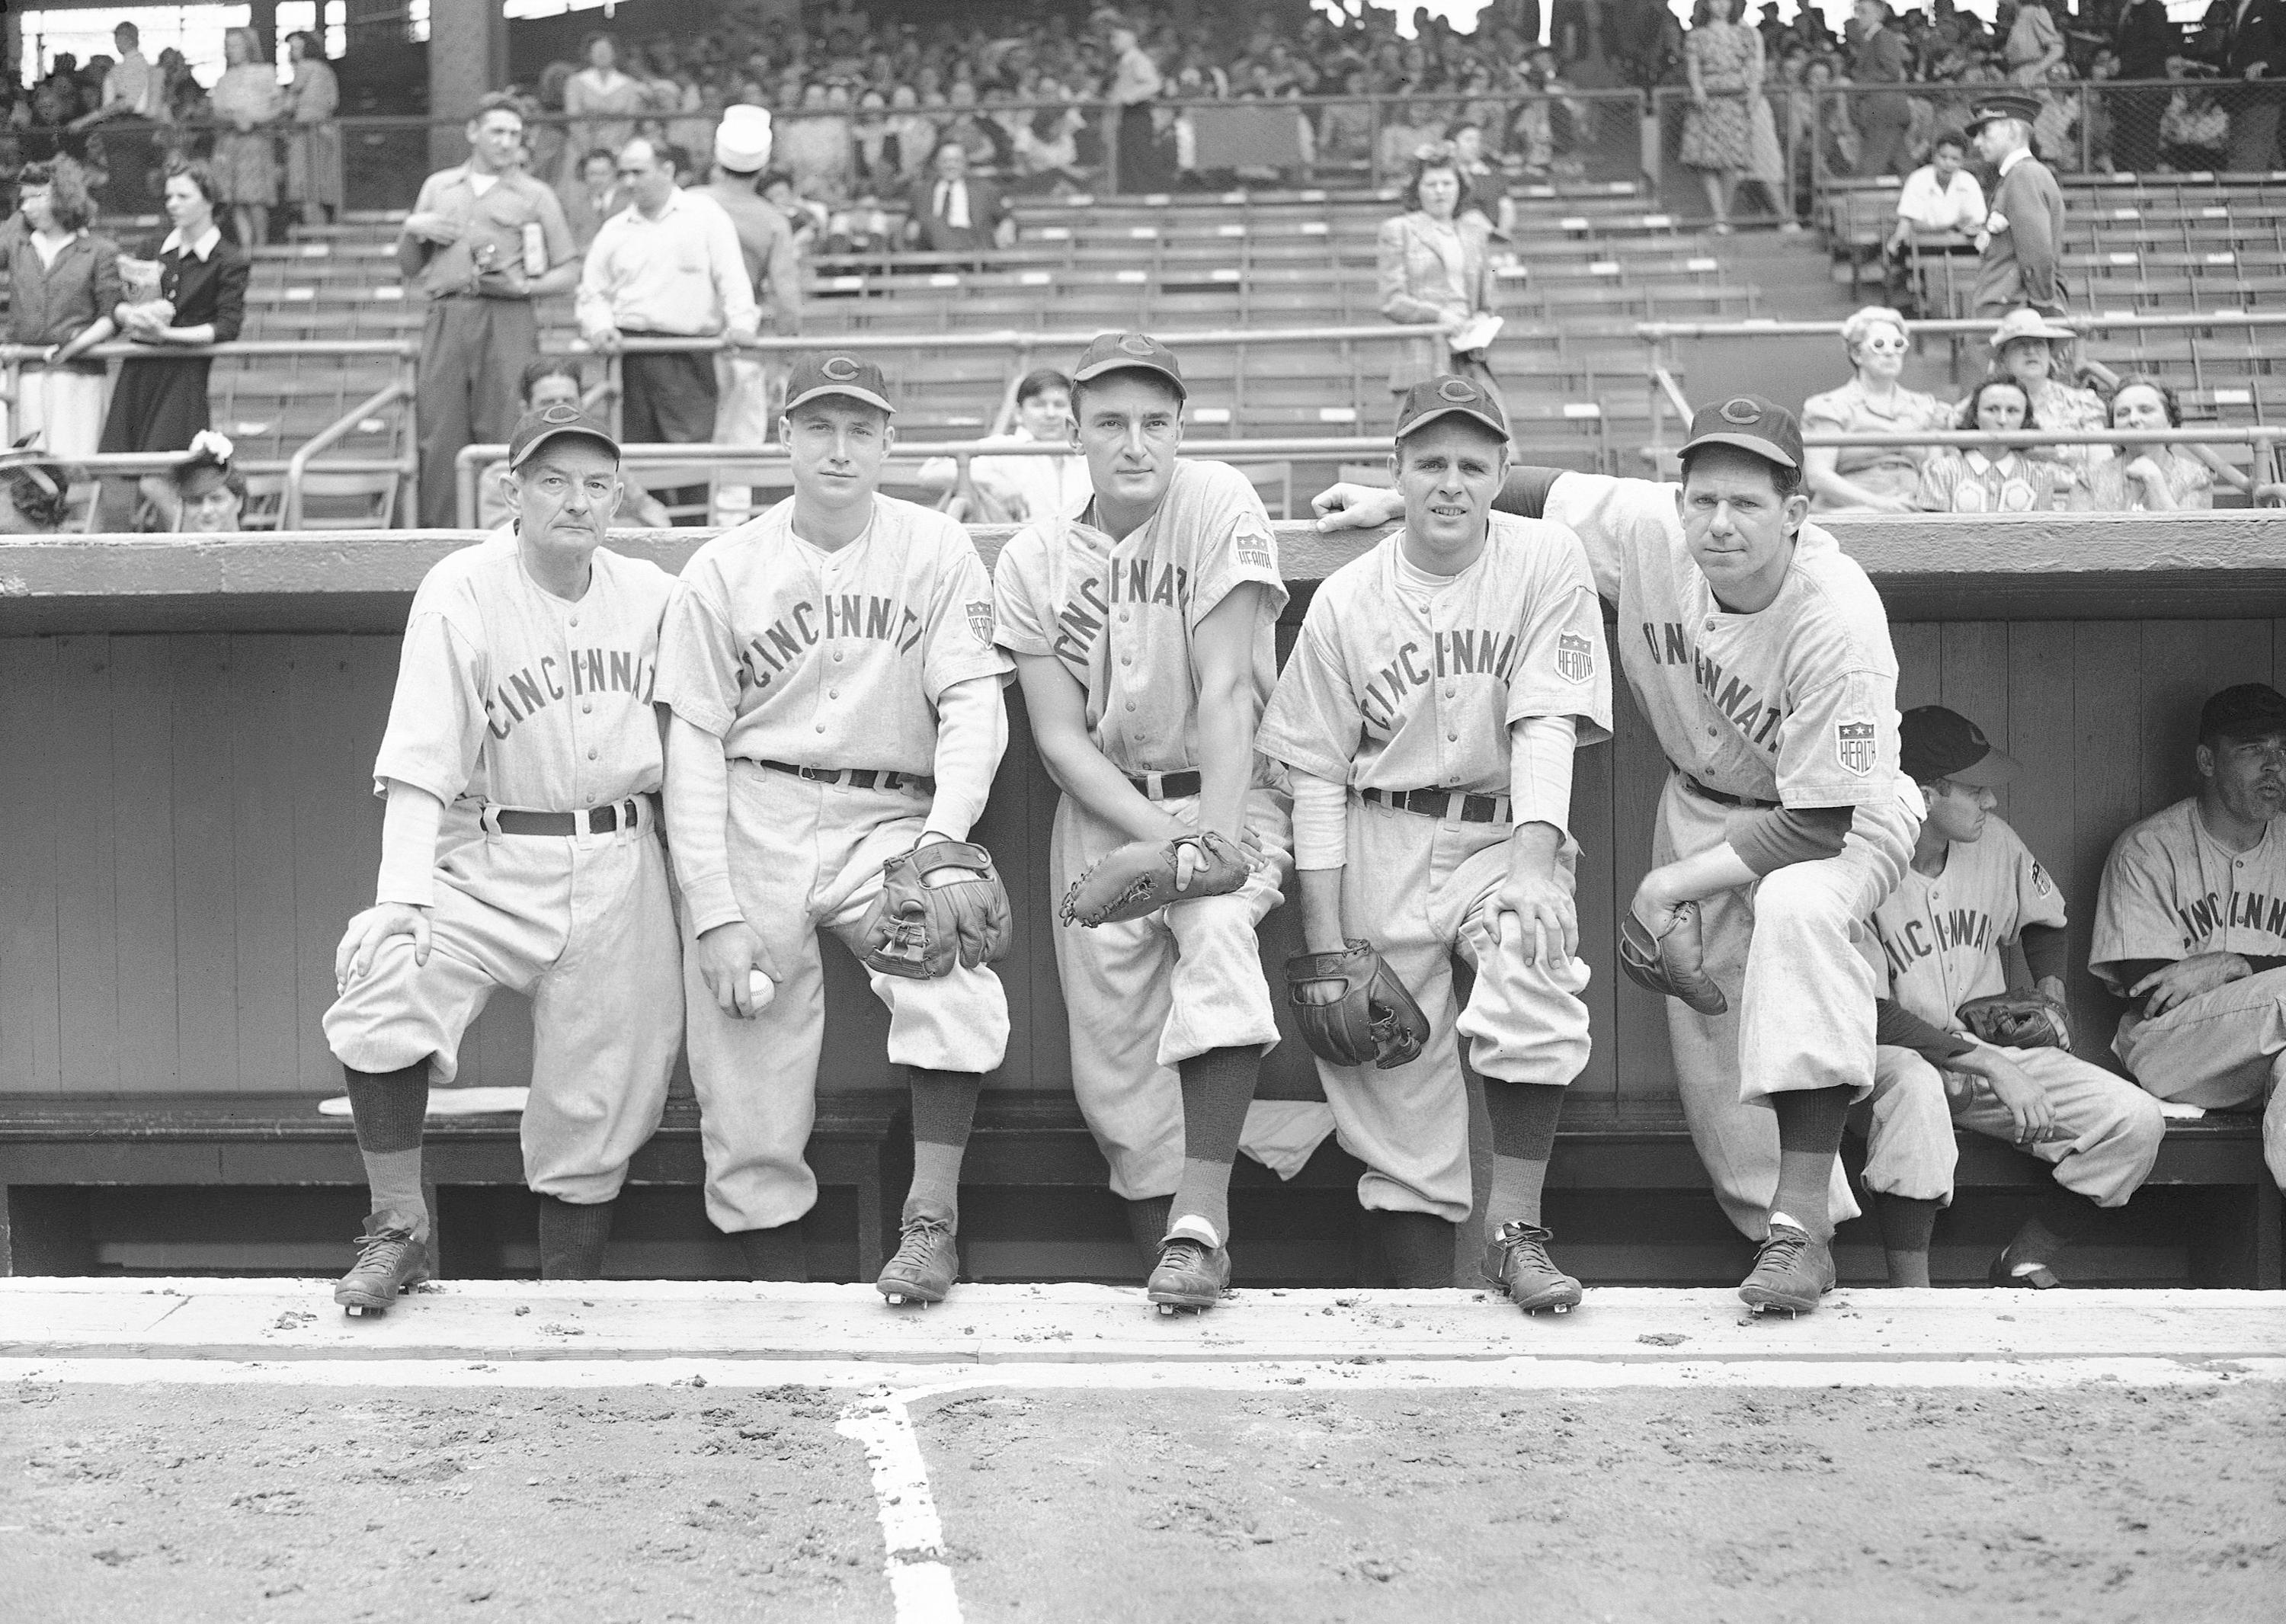 FILE - In this June 26, 1942 file photo, Cincinnati Reds All-Stars line up at Ebbets Field in Brooklyn, New York before a game with the Brook Dodgers. From left to right are Bill McKechnie; Bucky Walters, pitchers; Frank McCormick, first baseman; Johnny Vander Meer, pitcher, and Paul Derringer, pitcher. (AP Photo, File)